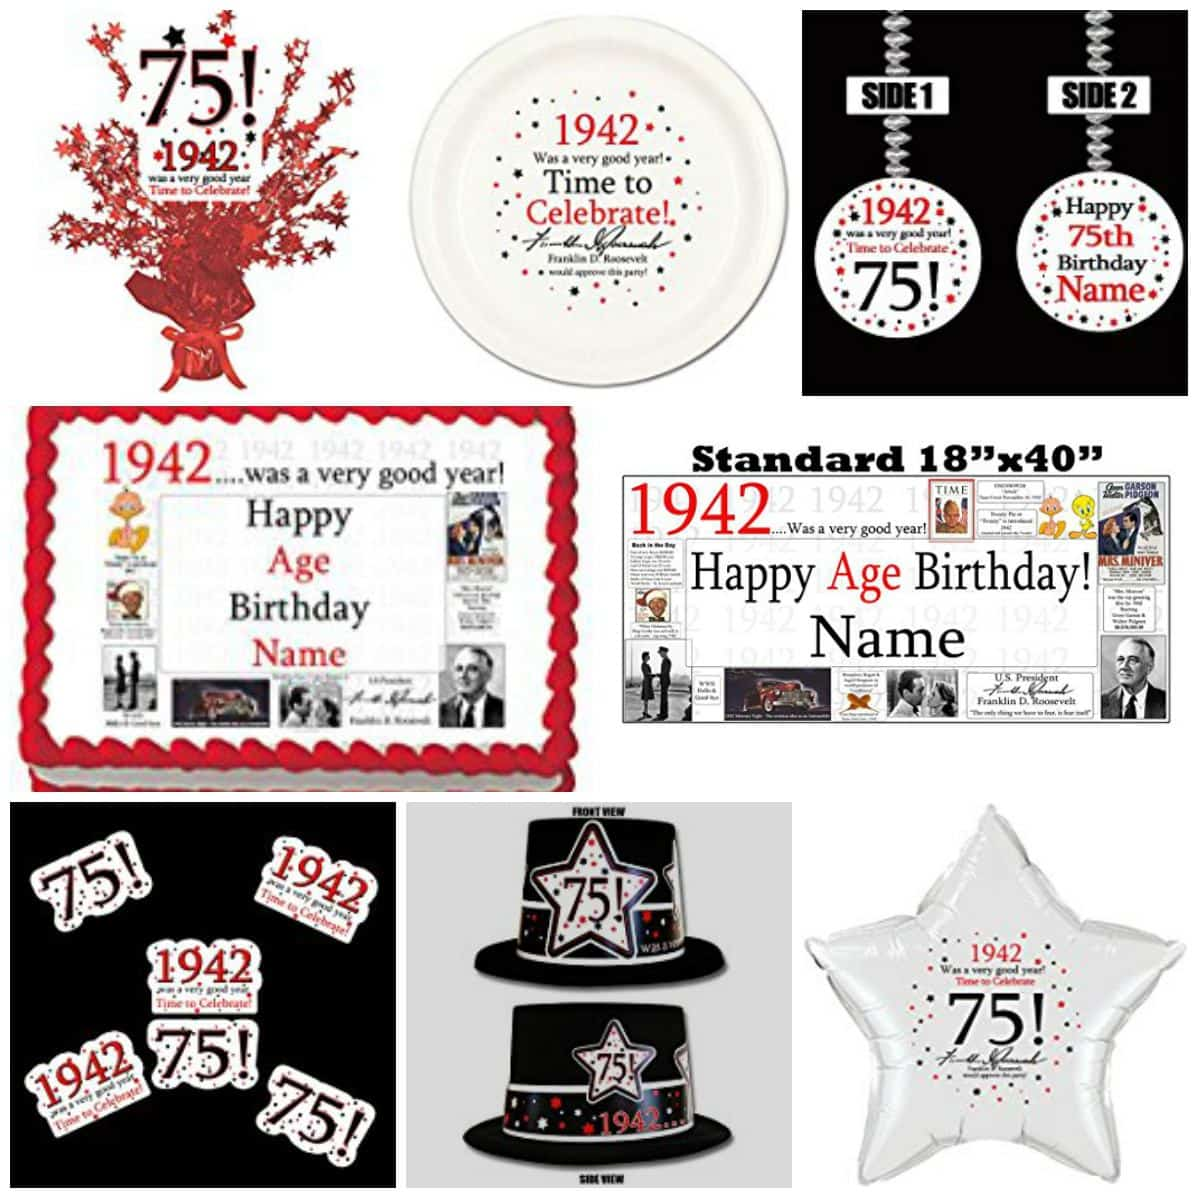 1942 was a very good year 75th birthday party theme for 75th birthday decoration ideas